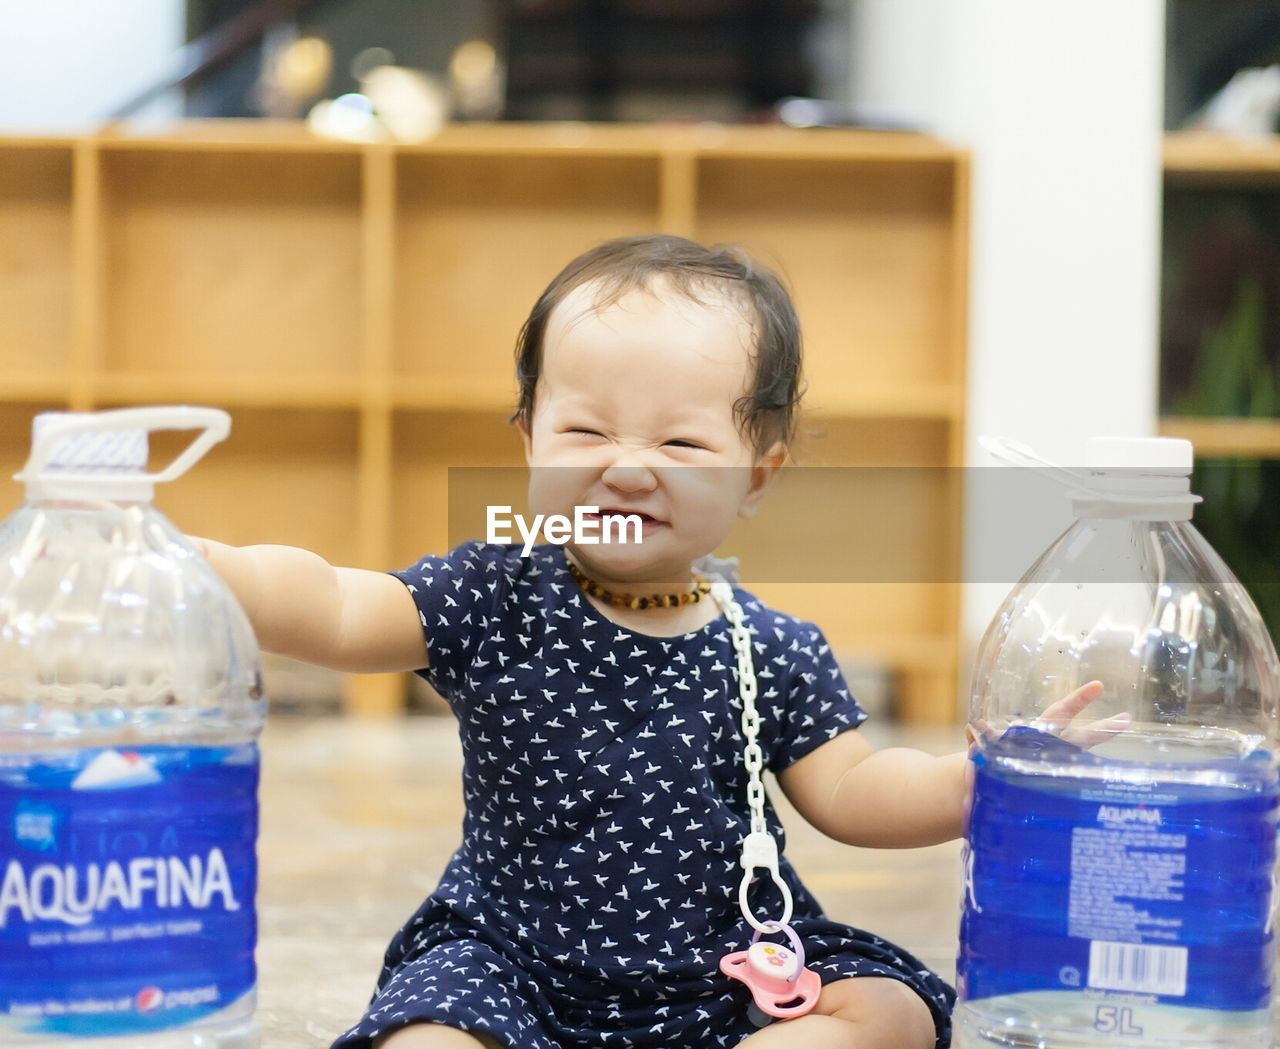 bottle, real people, one person, childhood, innocence, casual clothing, front view, lifestyles, water bottle, food and drink, focus on foreground, smiling, milk bottle, happiness, cute, drink, day, indoors, food, freshness